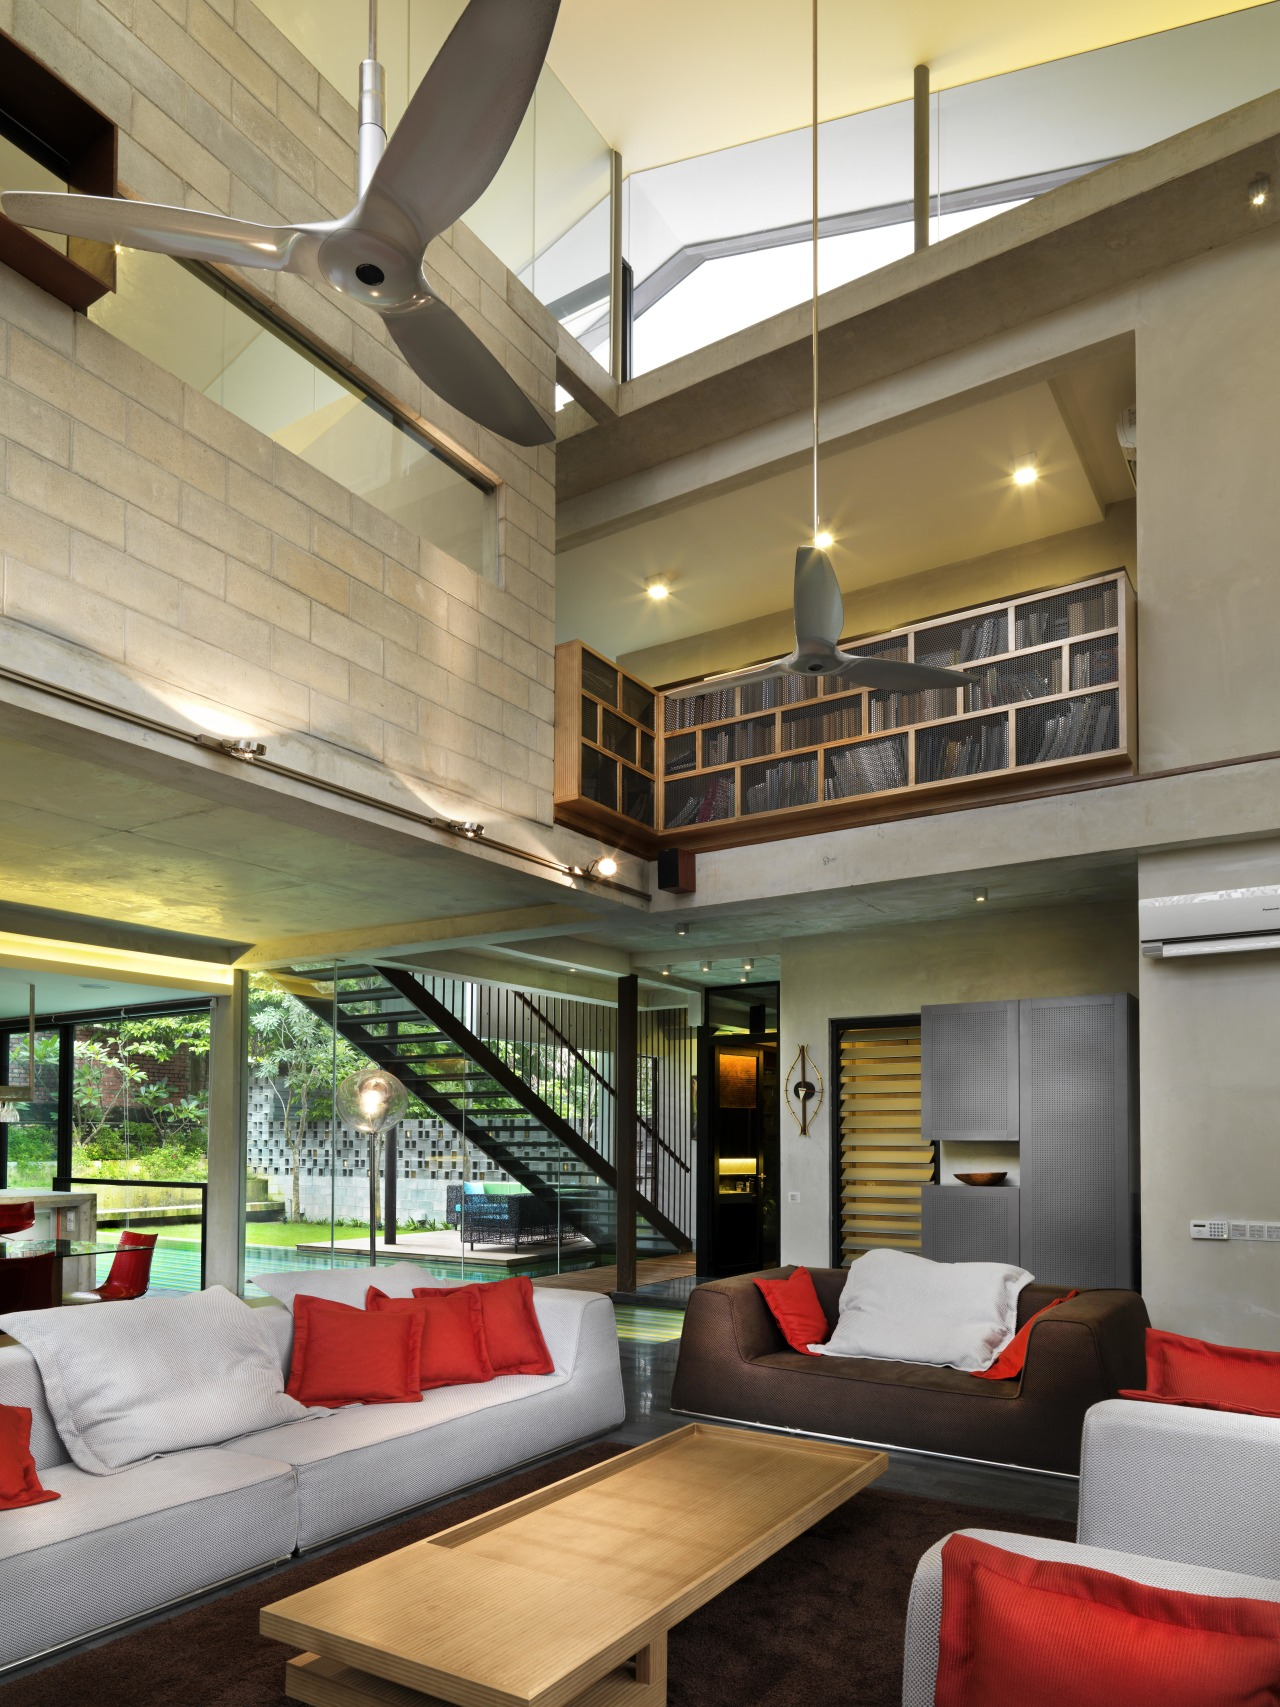 A double-height volume and exposed concrete formwork house architecture, ceiling, daylighting, interior design, living room, lobby, real estate, brown